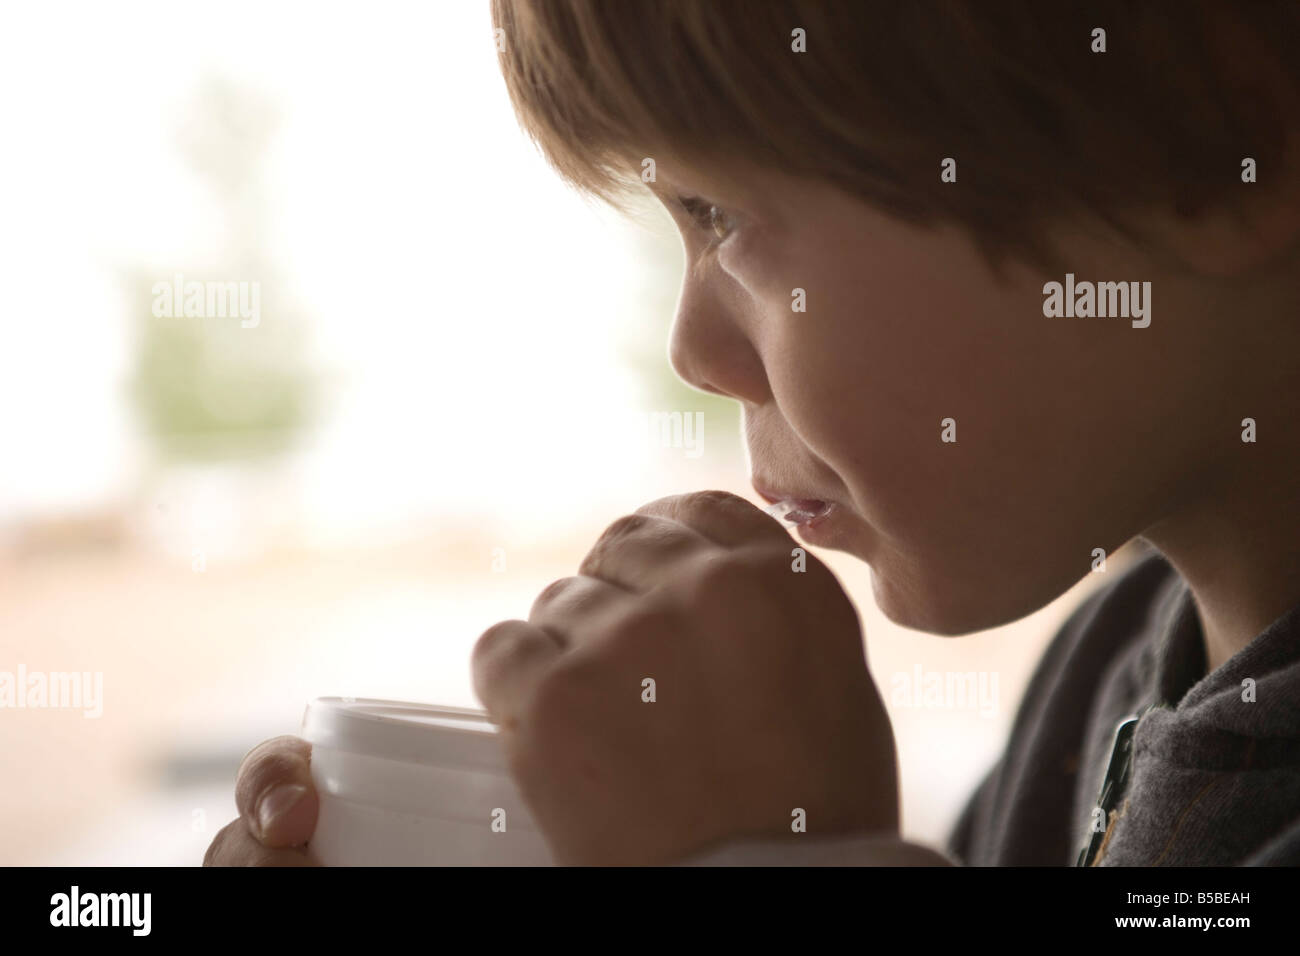 six year old boy drinking out of a straw - Stock Image